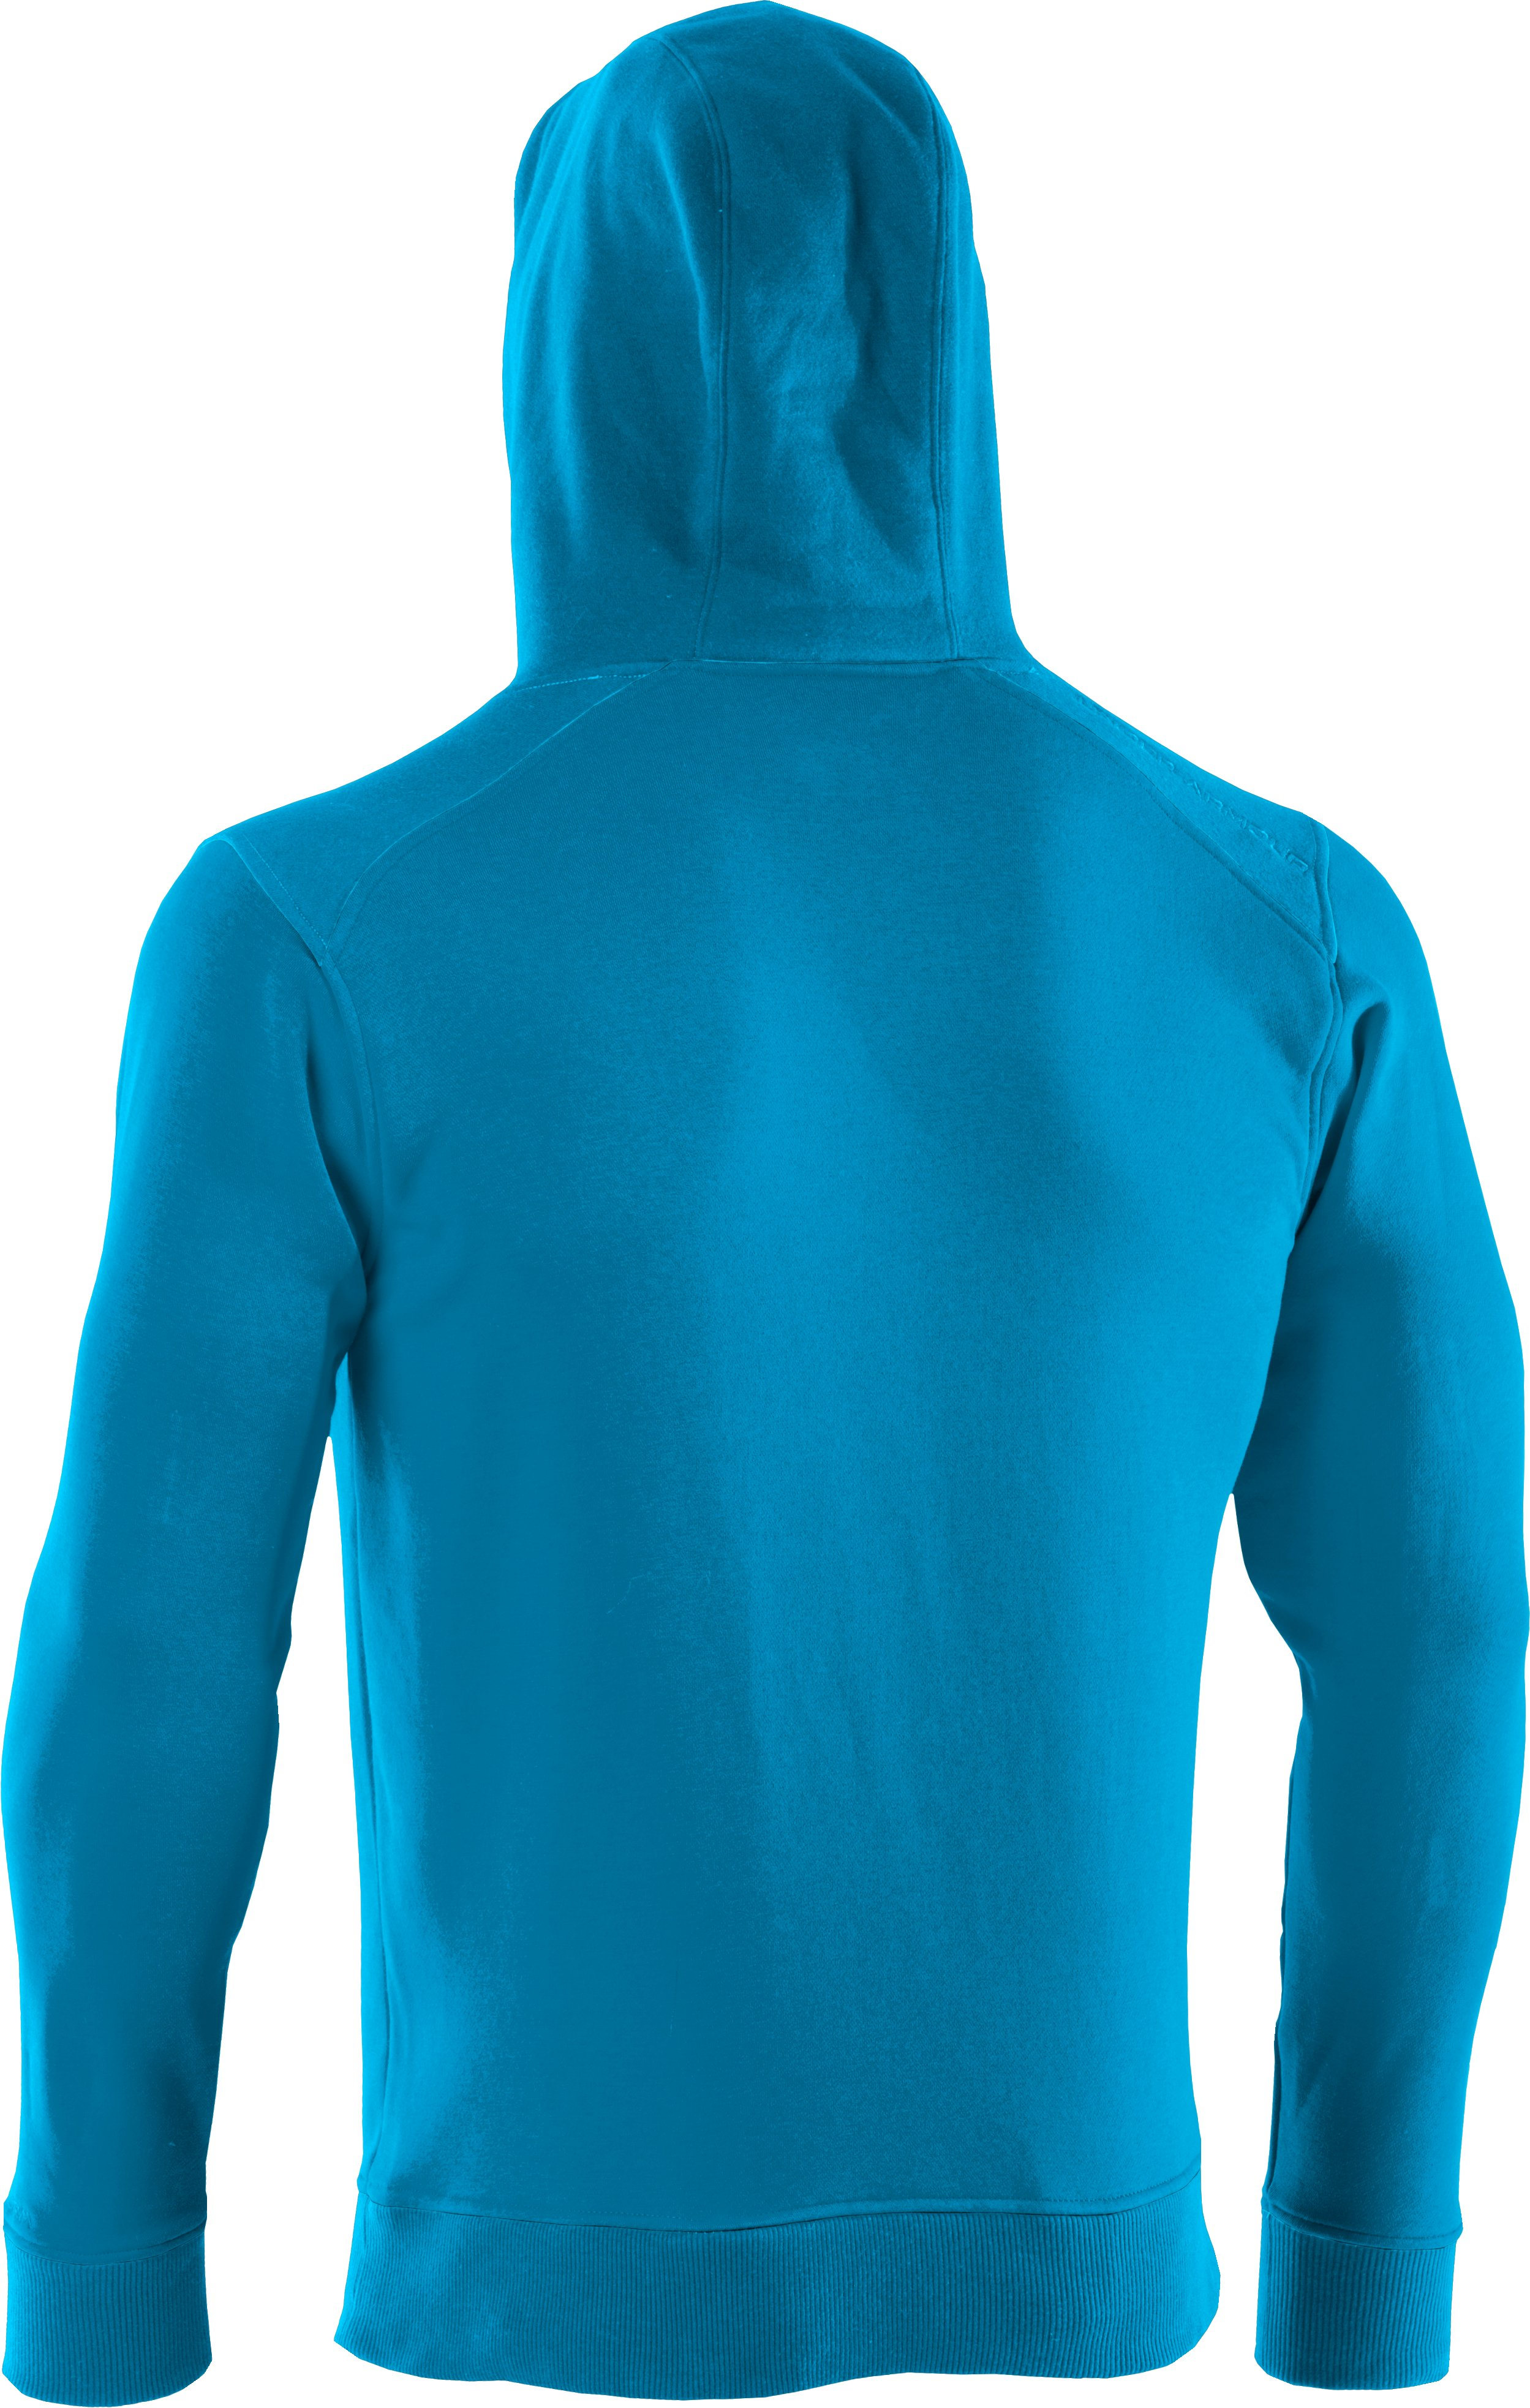 Men's Charged Cotton® Storm Hoodie, PIRATE BLUE